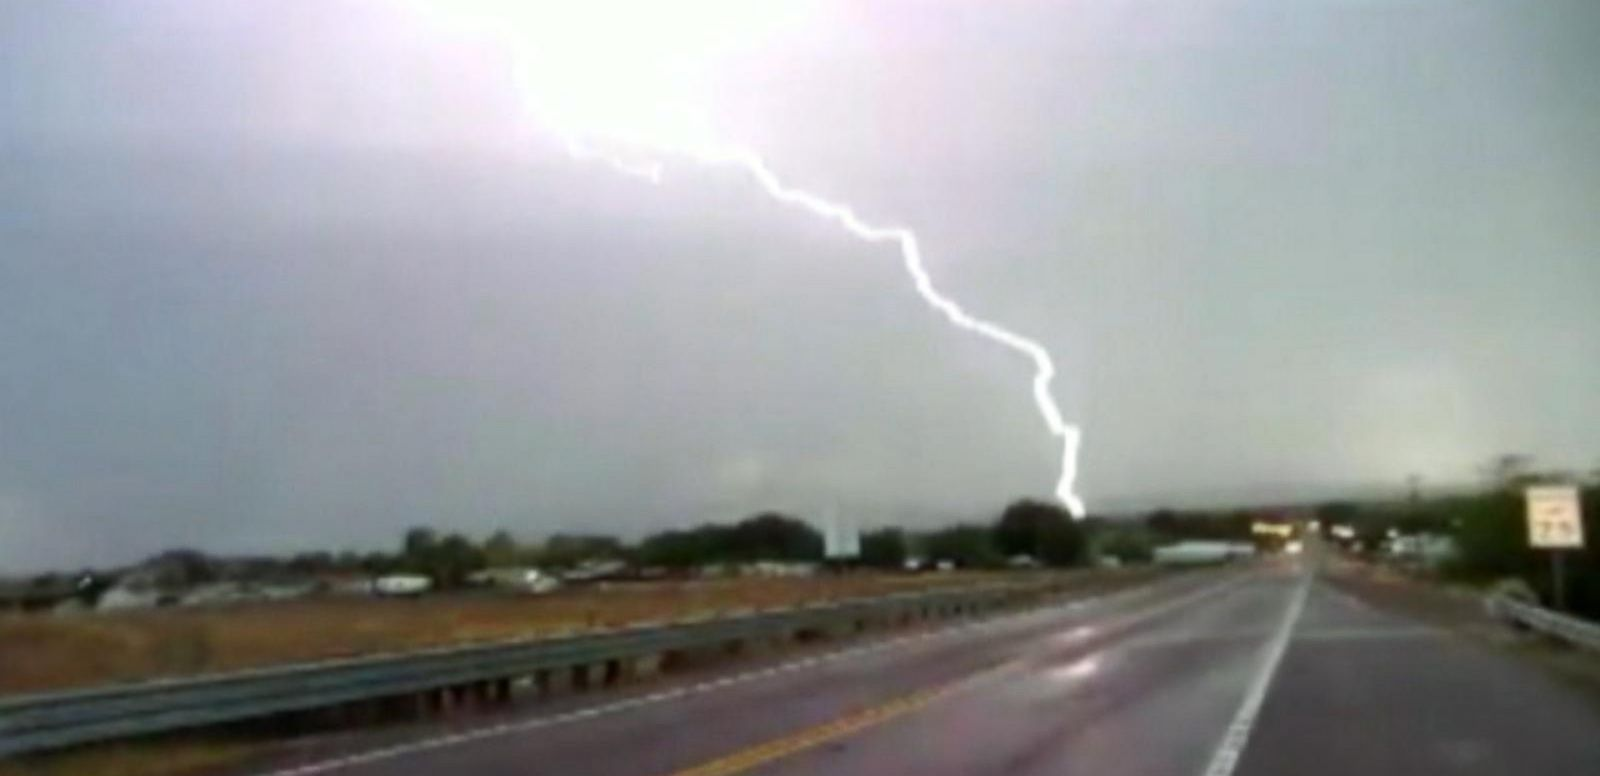 VIDEO: Deadly Lightning Bolt Strikes in Daytona Beach, Florida